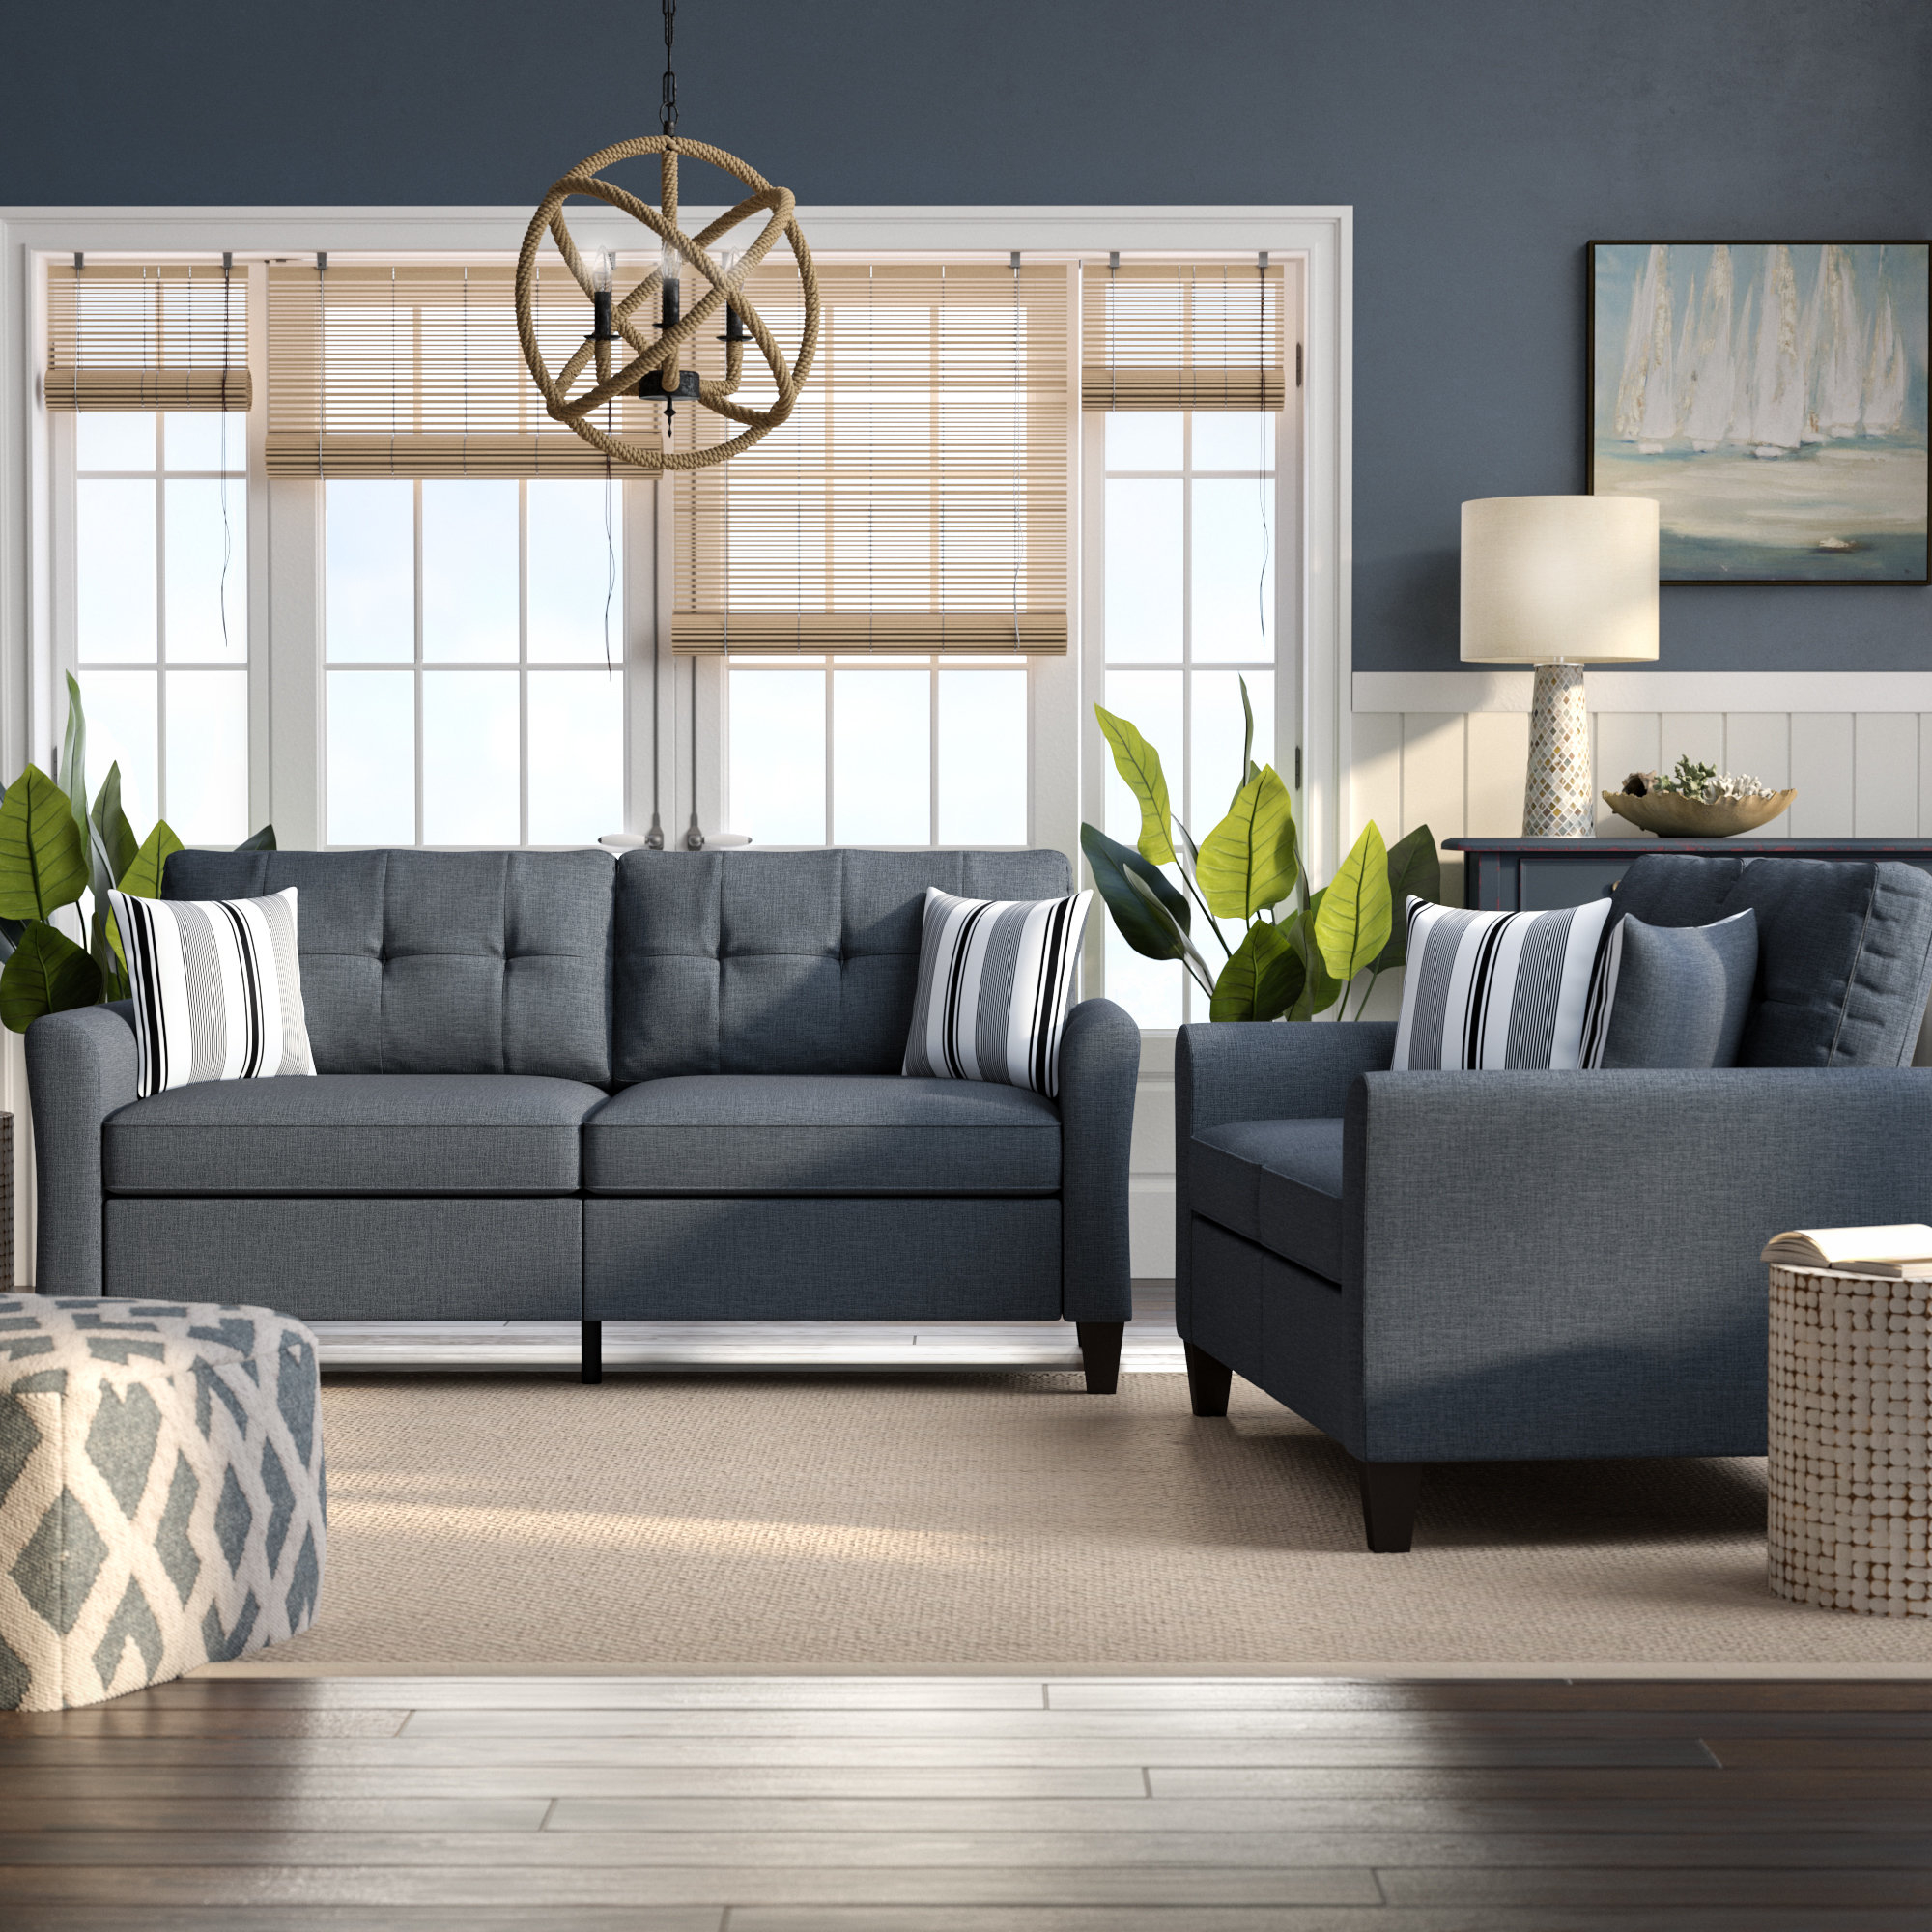 Wolfram 2 Piece Living Room Set within 12 Genius Concepts of How to Makeover Living Room Set Cheap